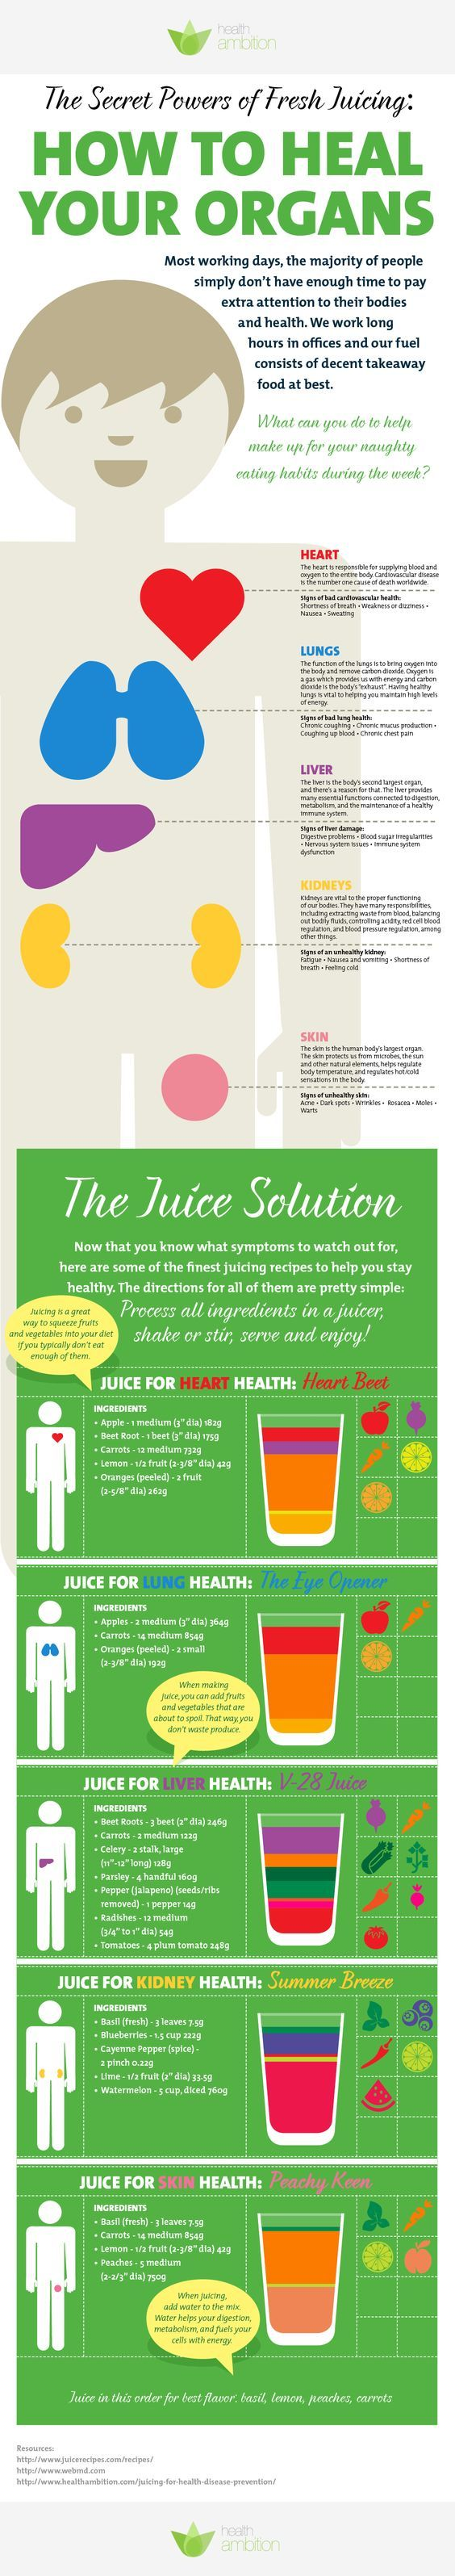 The secret powers of fresh juicing to heal your organs...: